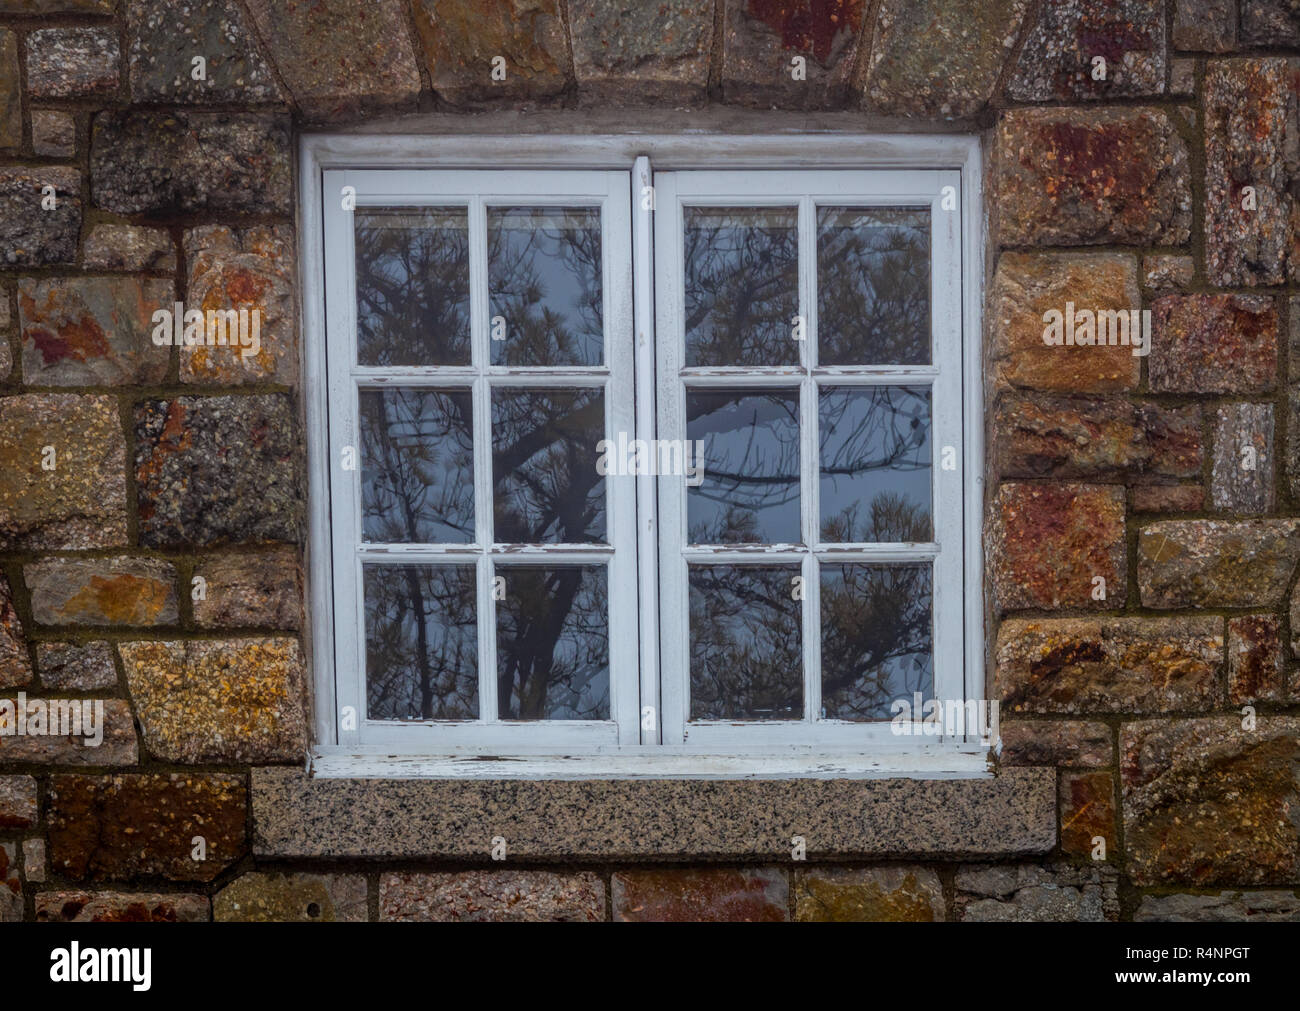 Double-paned window in white reflects bare coniferous pine trees through the panes surrounded with rugged warm-toned brick - Stock Image